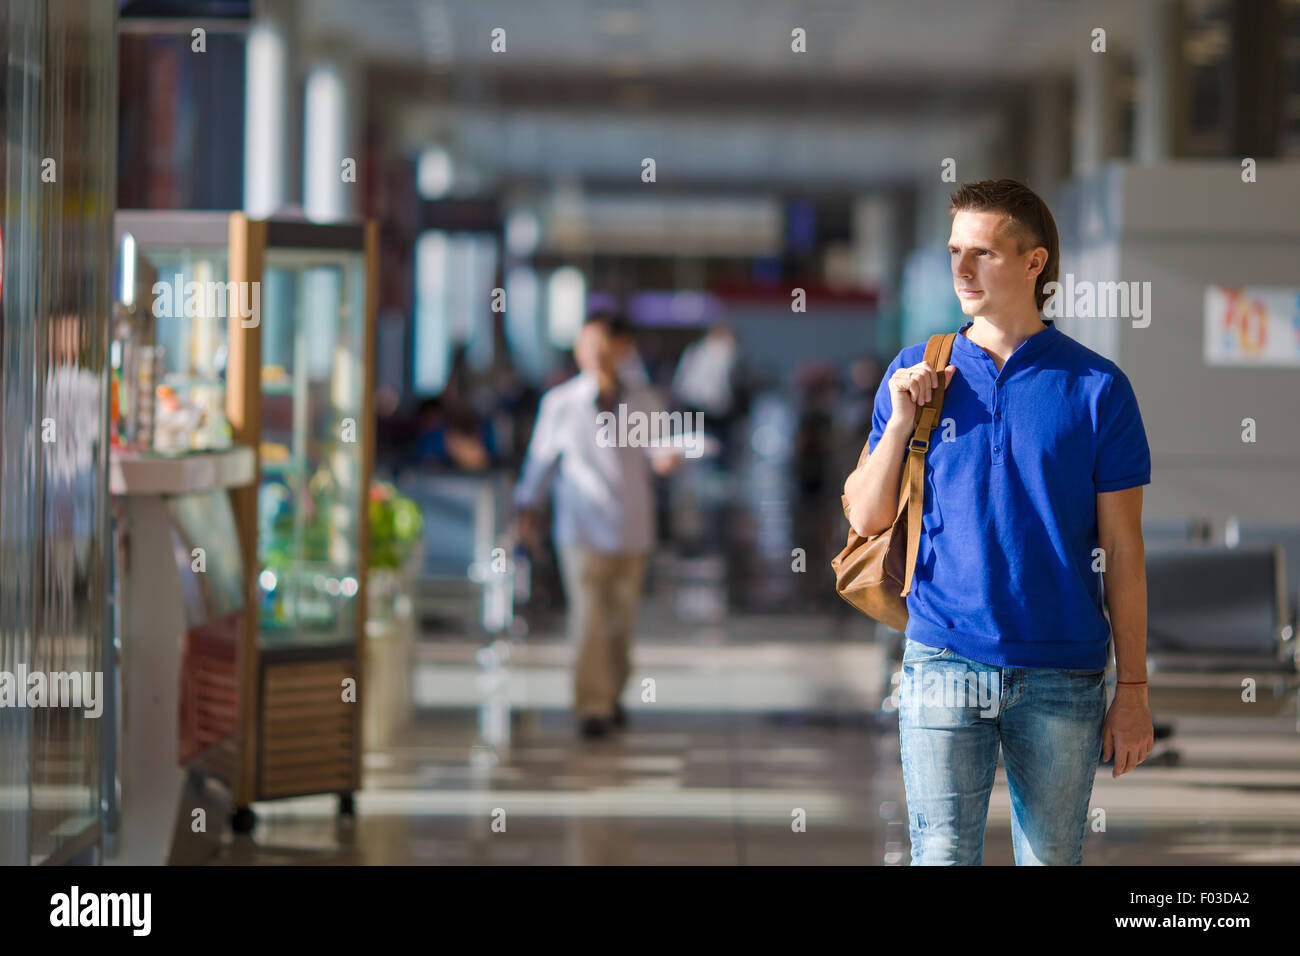 Young caucasian man at airport indoor waiting for boarding - Stock Image